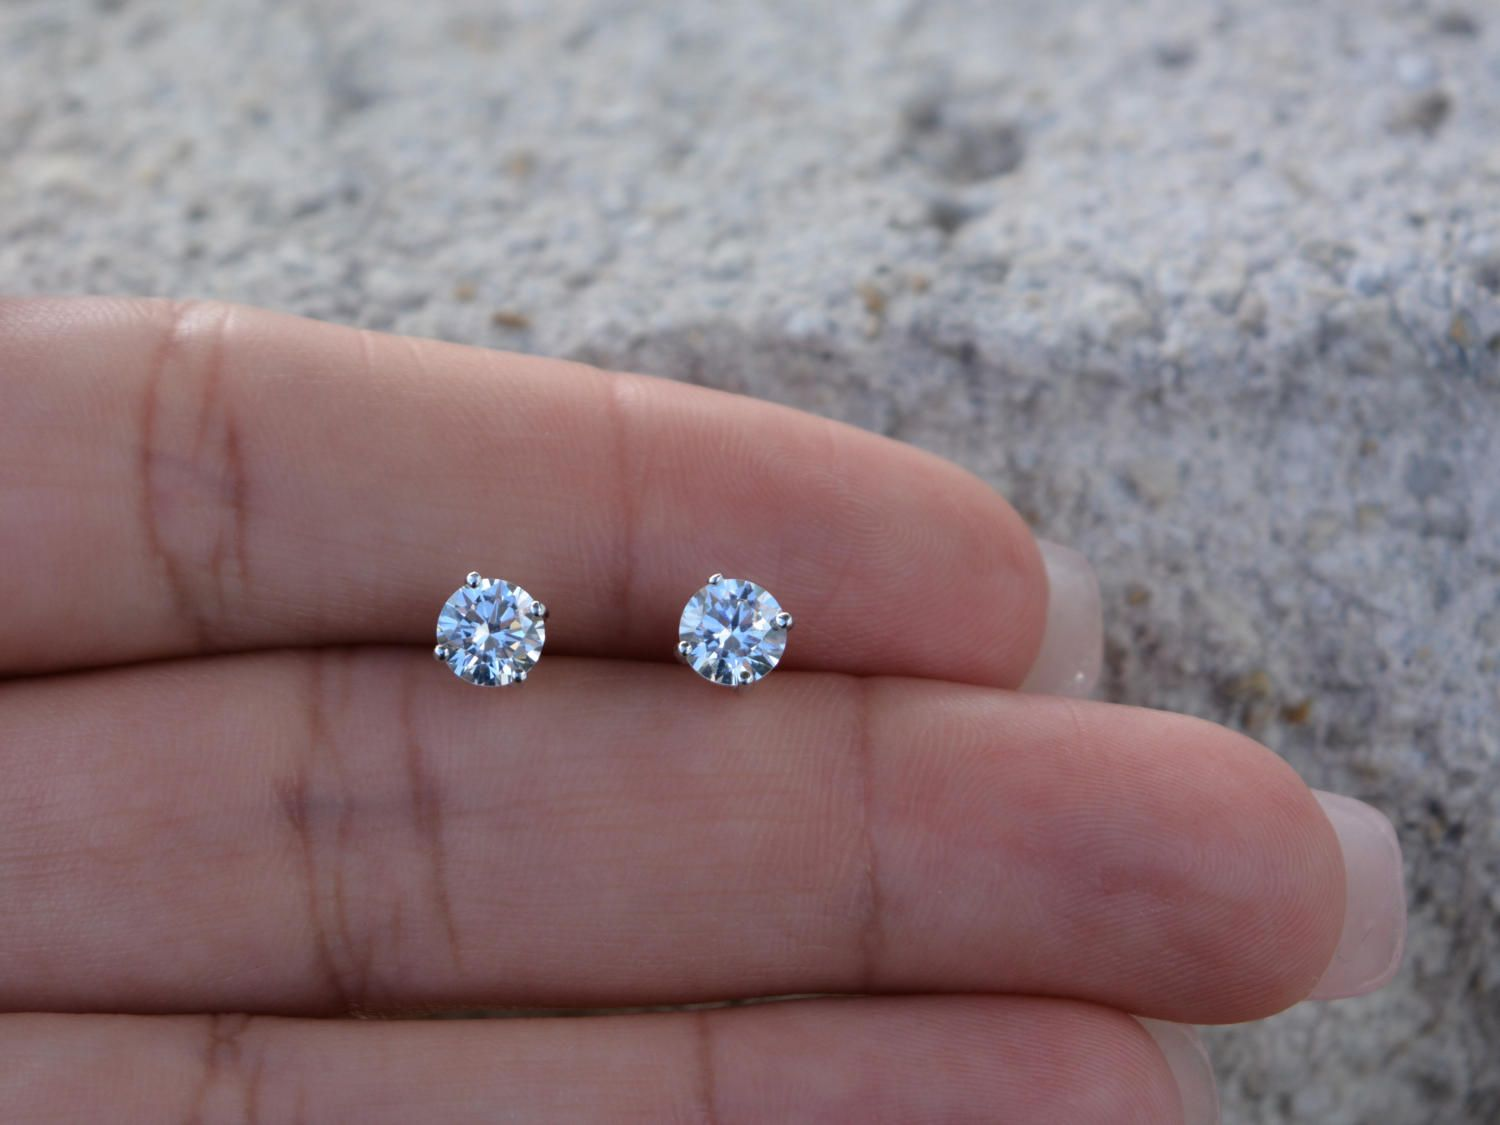 Sterling Silver 5mm Stud Earrings High Quality Cz Clic Round Studs